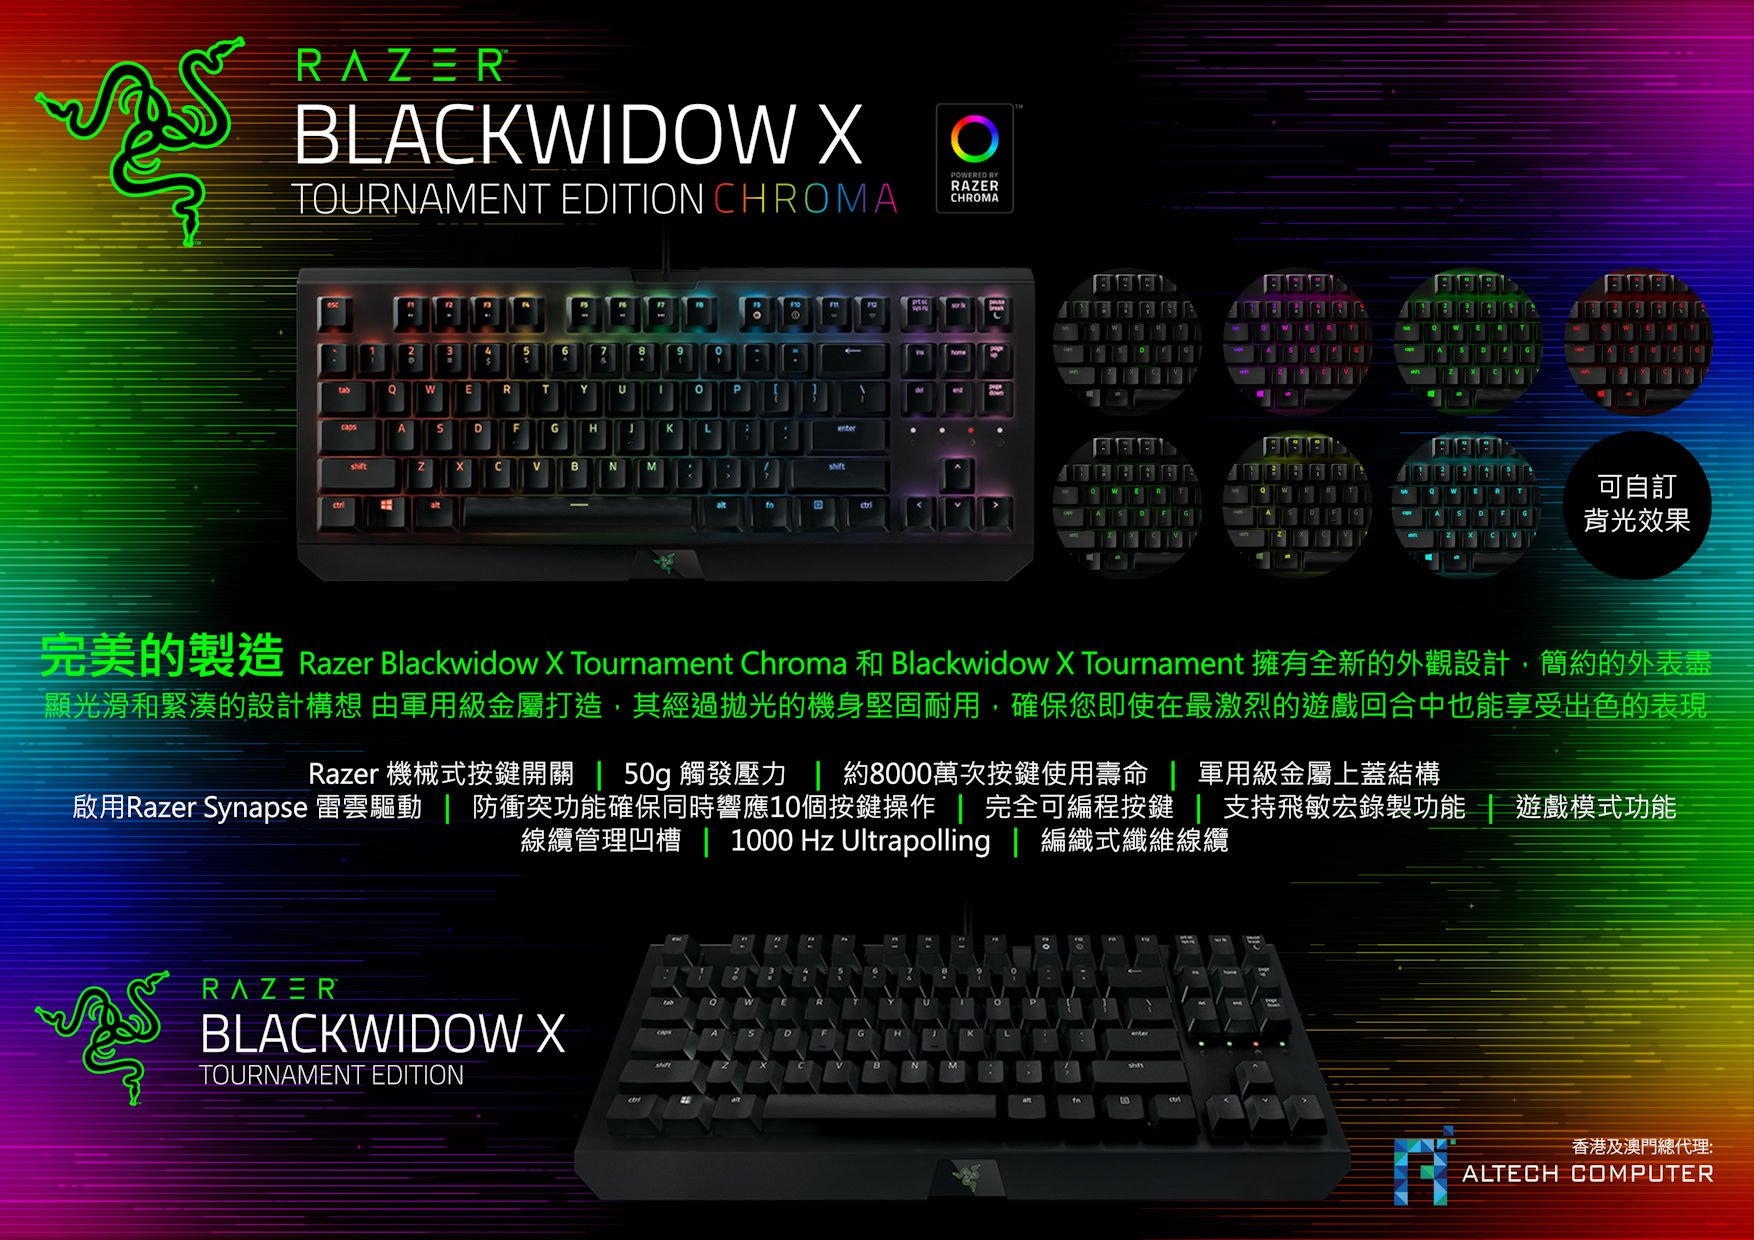 Razer Blackwidow X TE Series